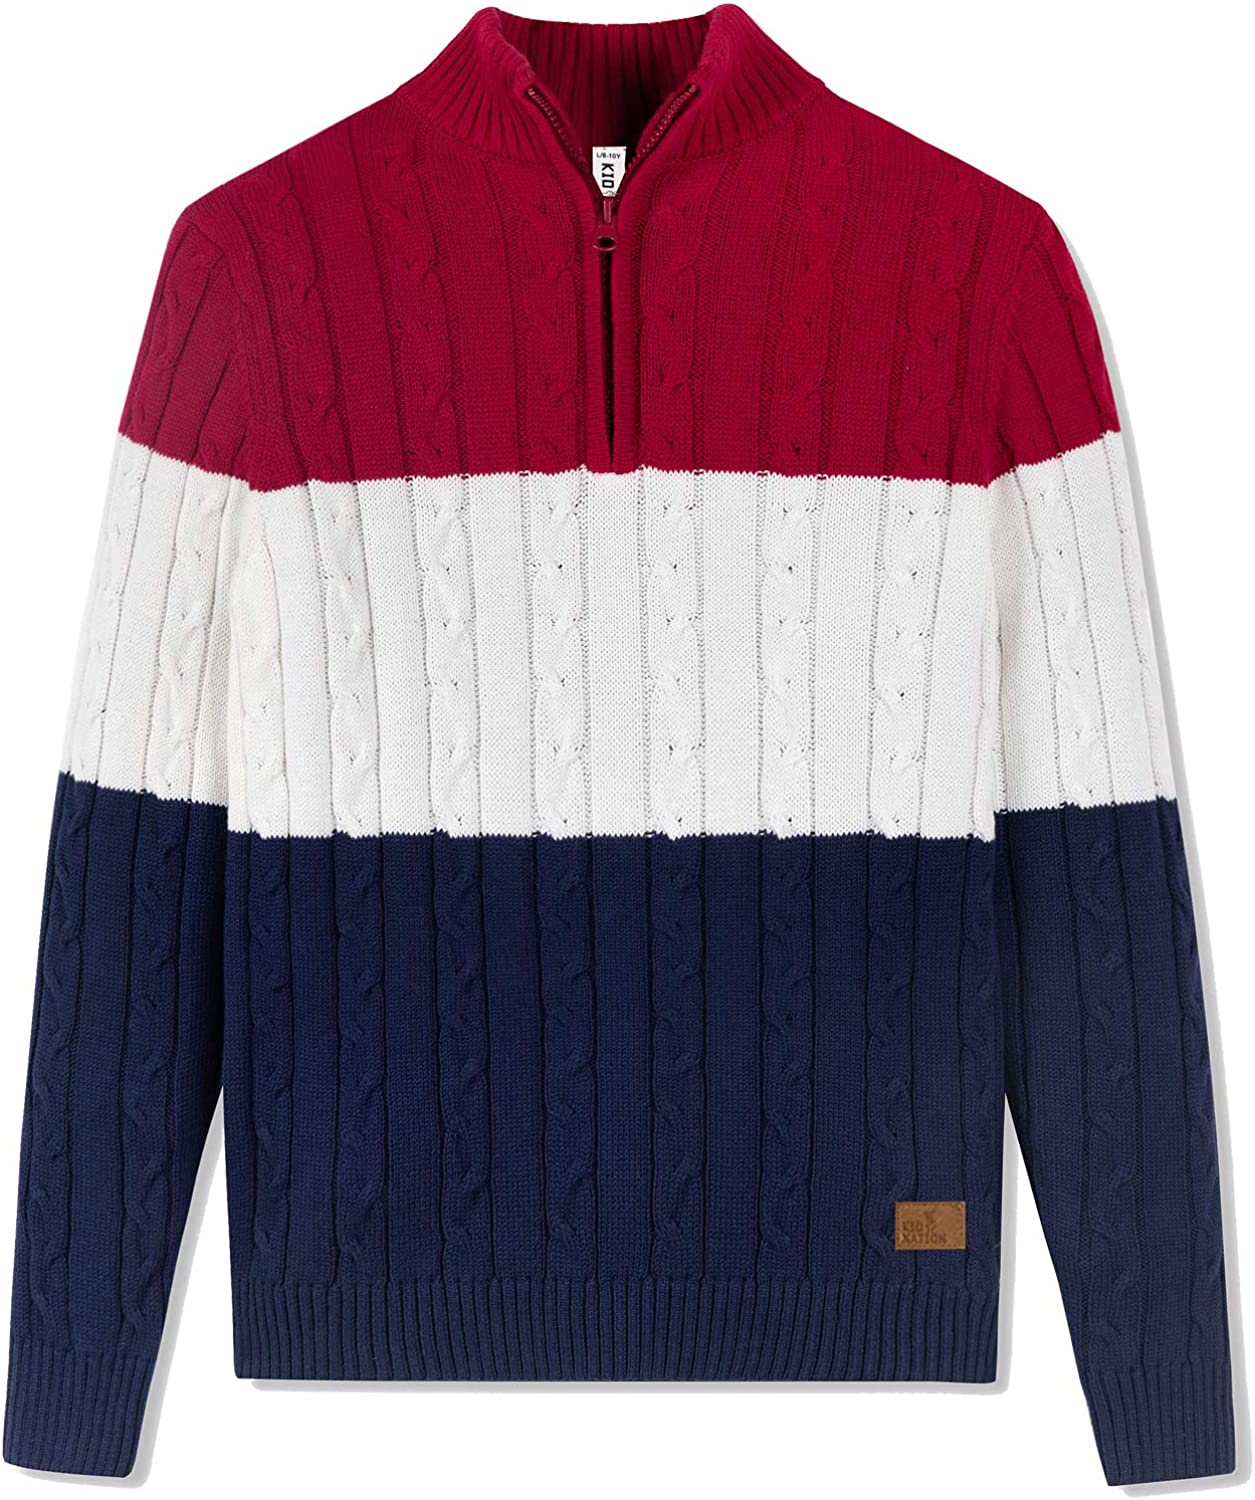 Amazon Essentials 1/4 Zip Sweater Casual Cable Knit Long Sleeve Pullover Sweatshirt for Boys Red/White/Navy 3-4T